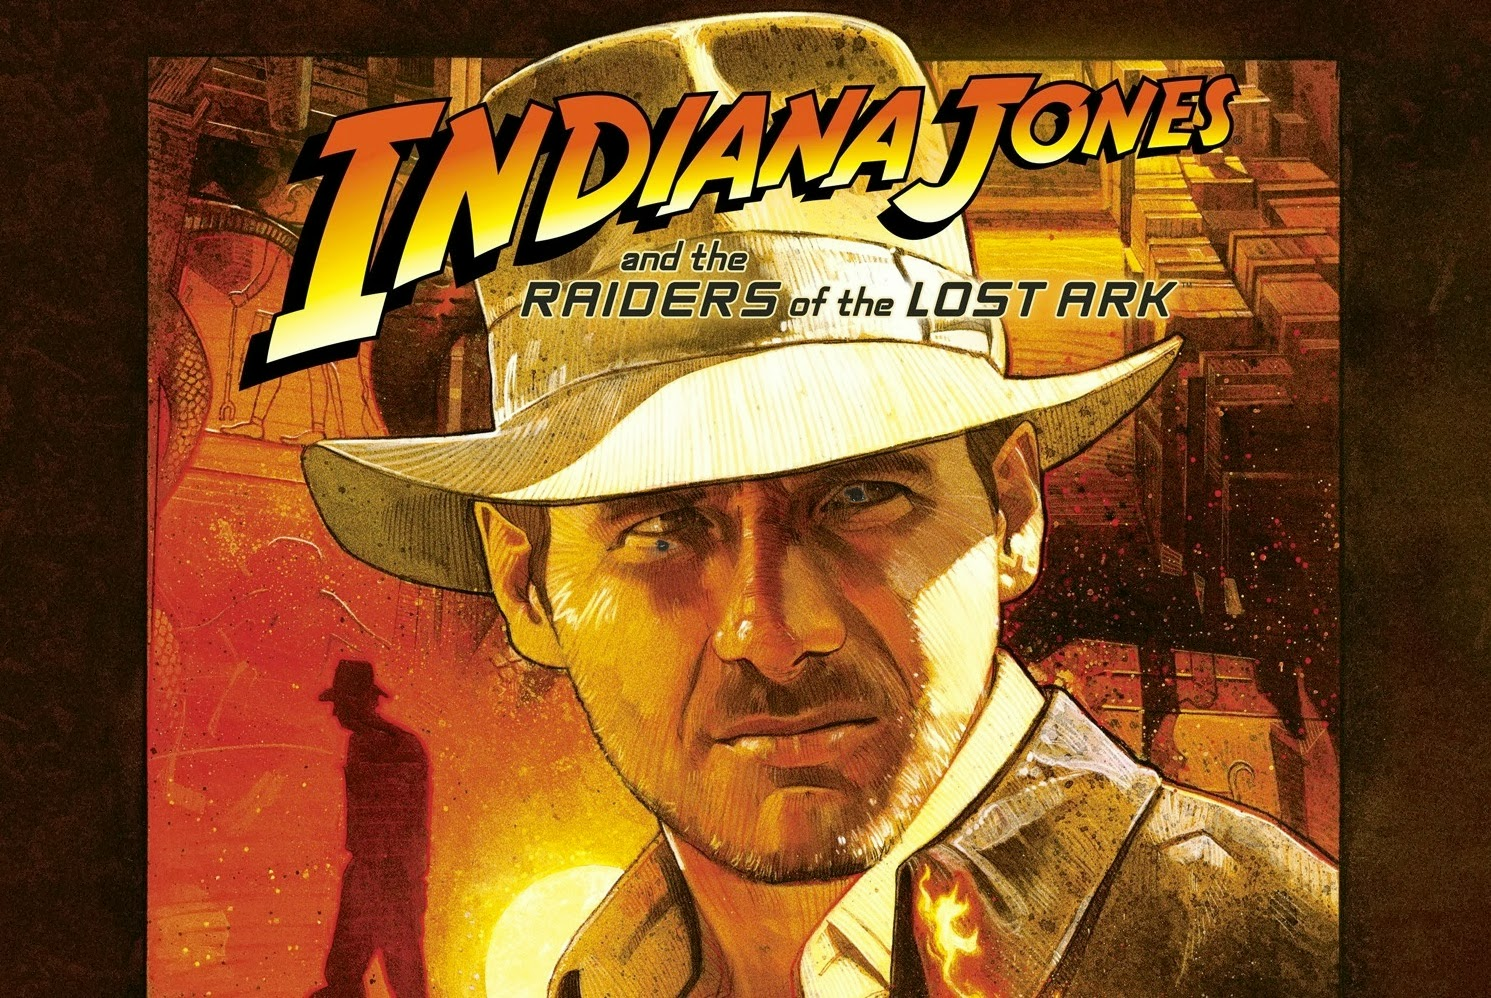 screening notes 2013 raiders of the lost ark review childhood favorites week